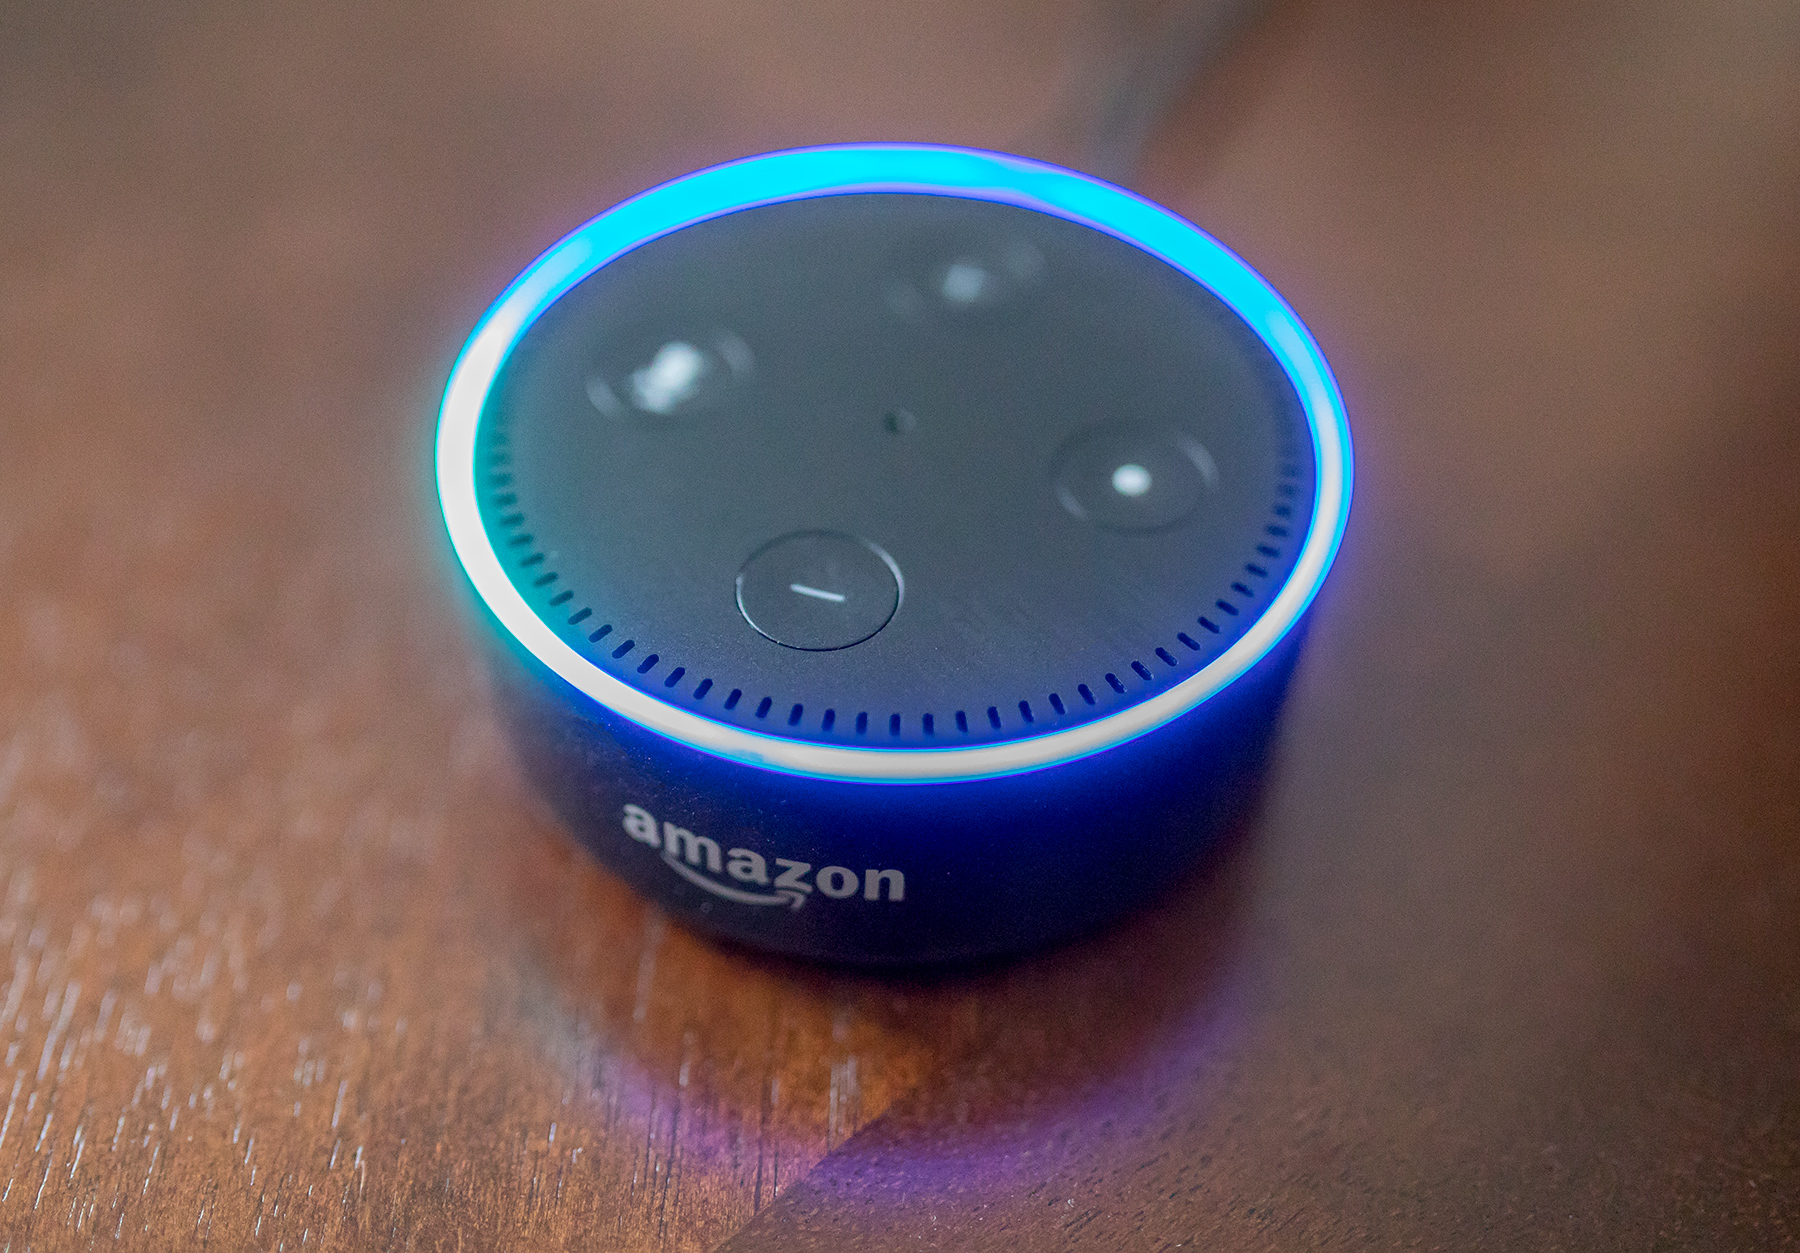 Alexa Brief Mode will make it less talkative